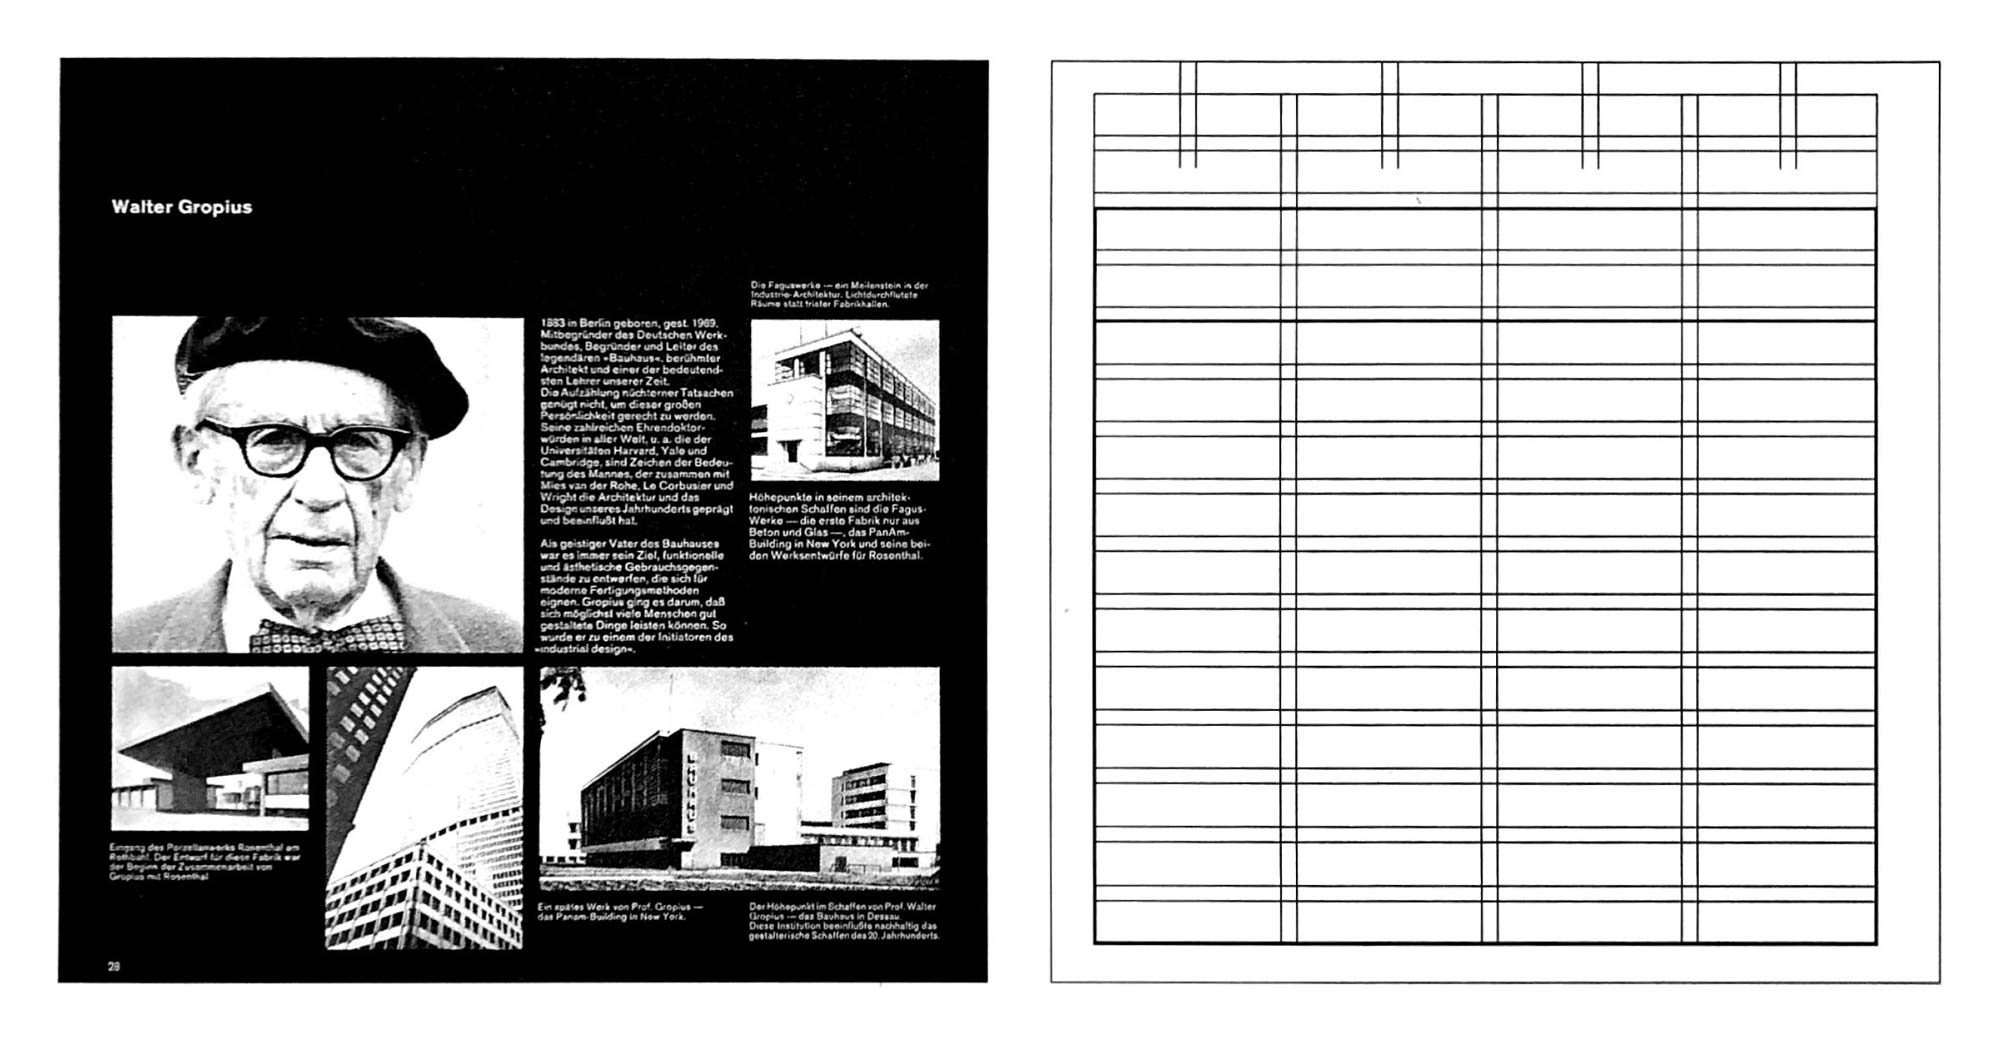 Sample page from the catalog showing the use of the 4 column, 15 row grid to layout an arrangement of images and text.